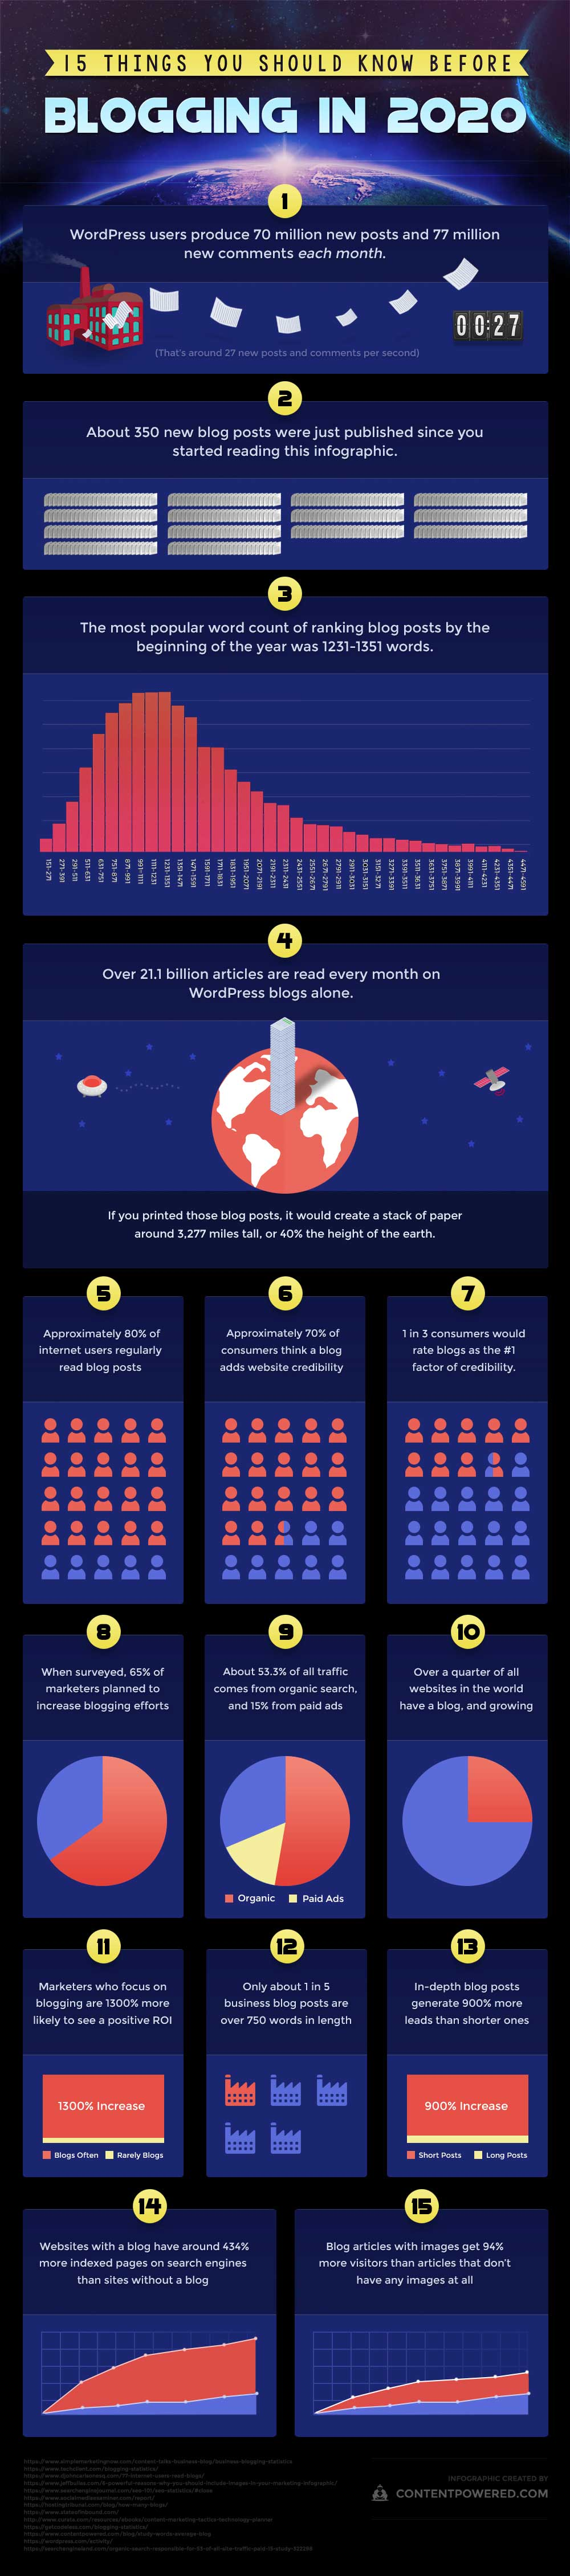 Infographic Blogging in 2020